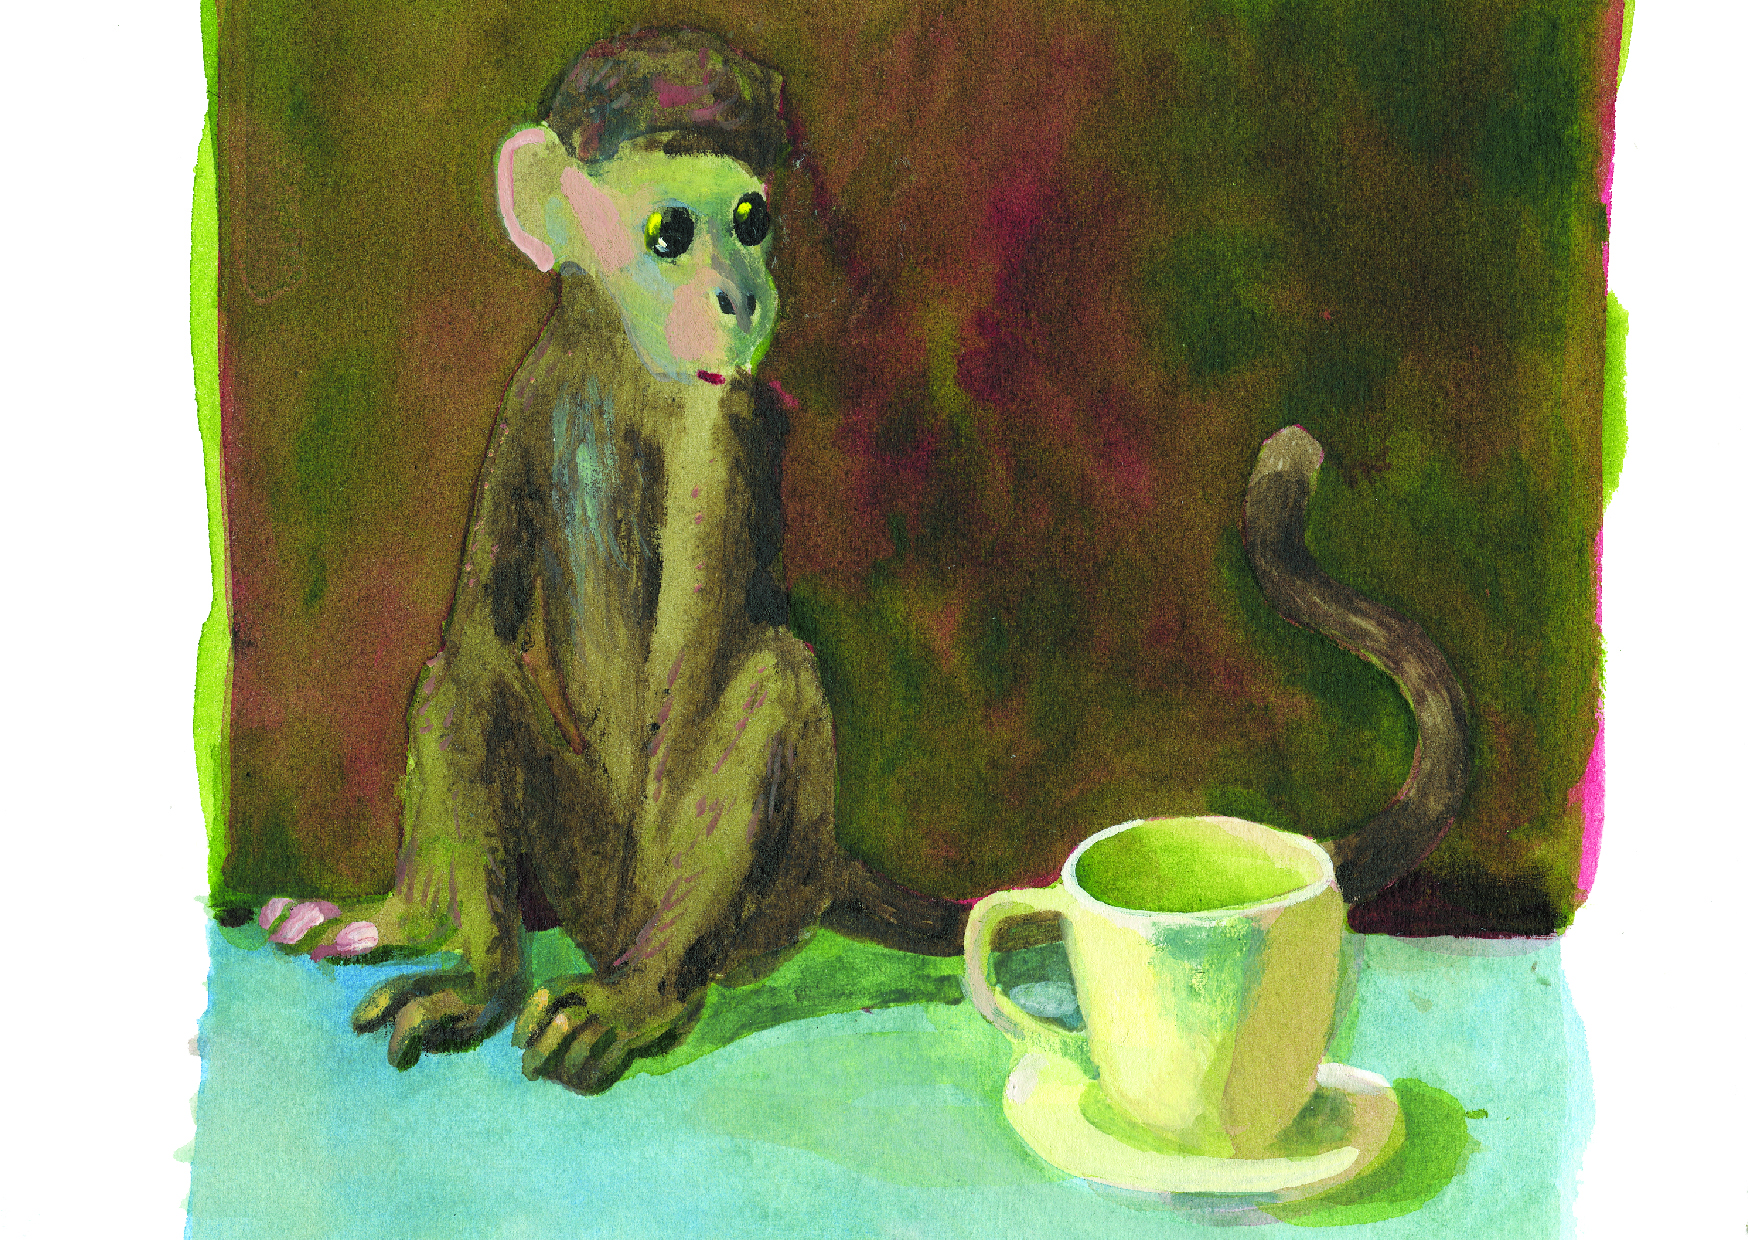 Charles Williams - Monkey and Teacup.jpg